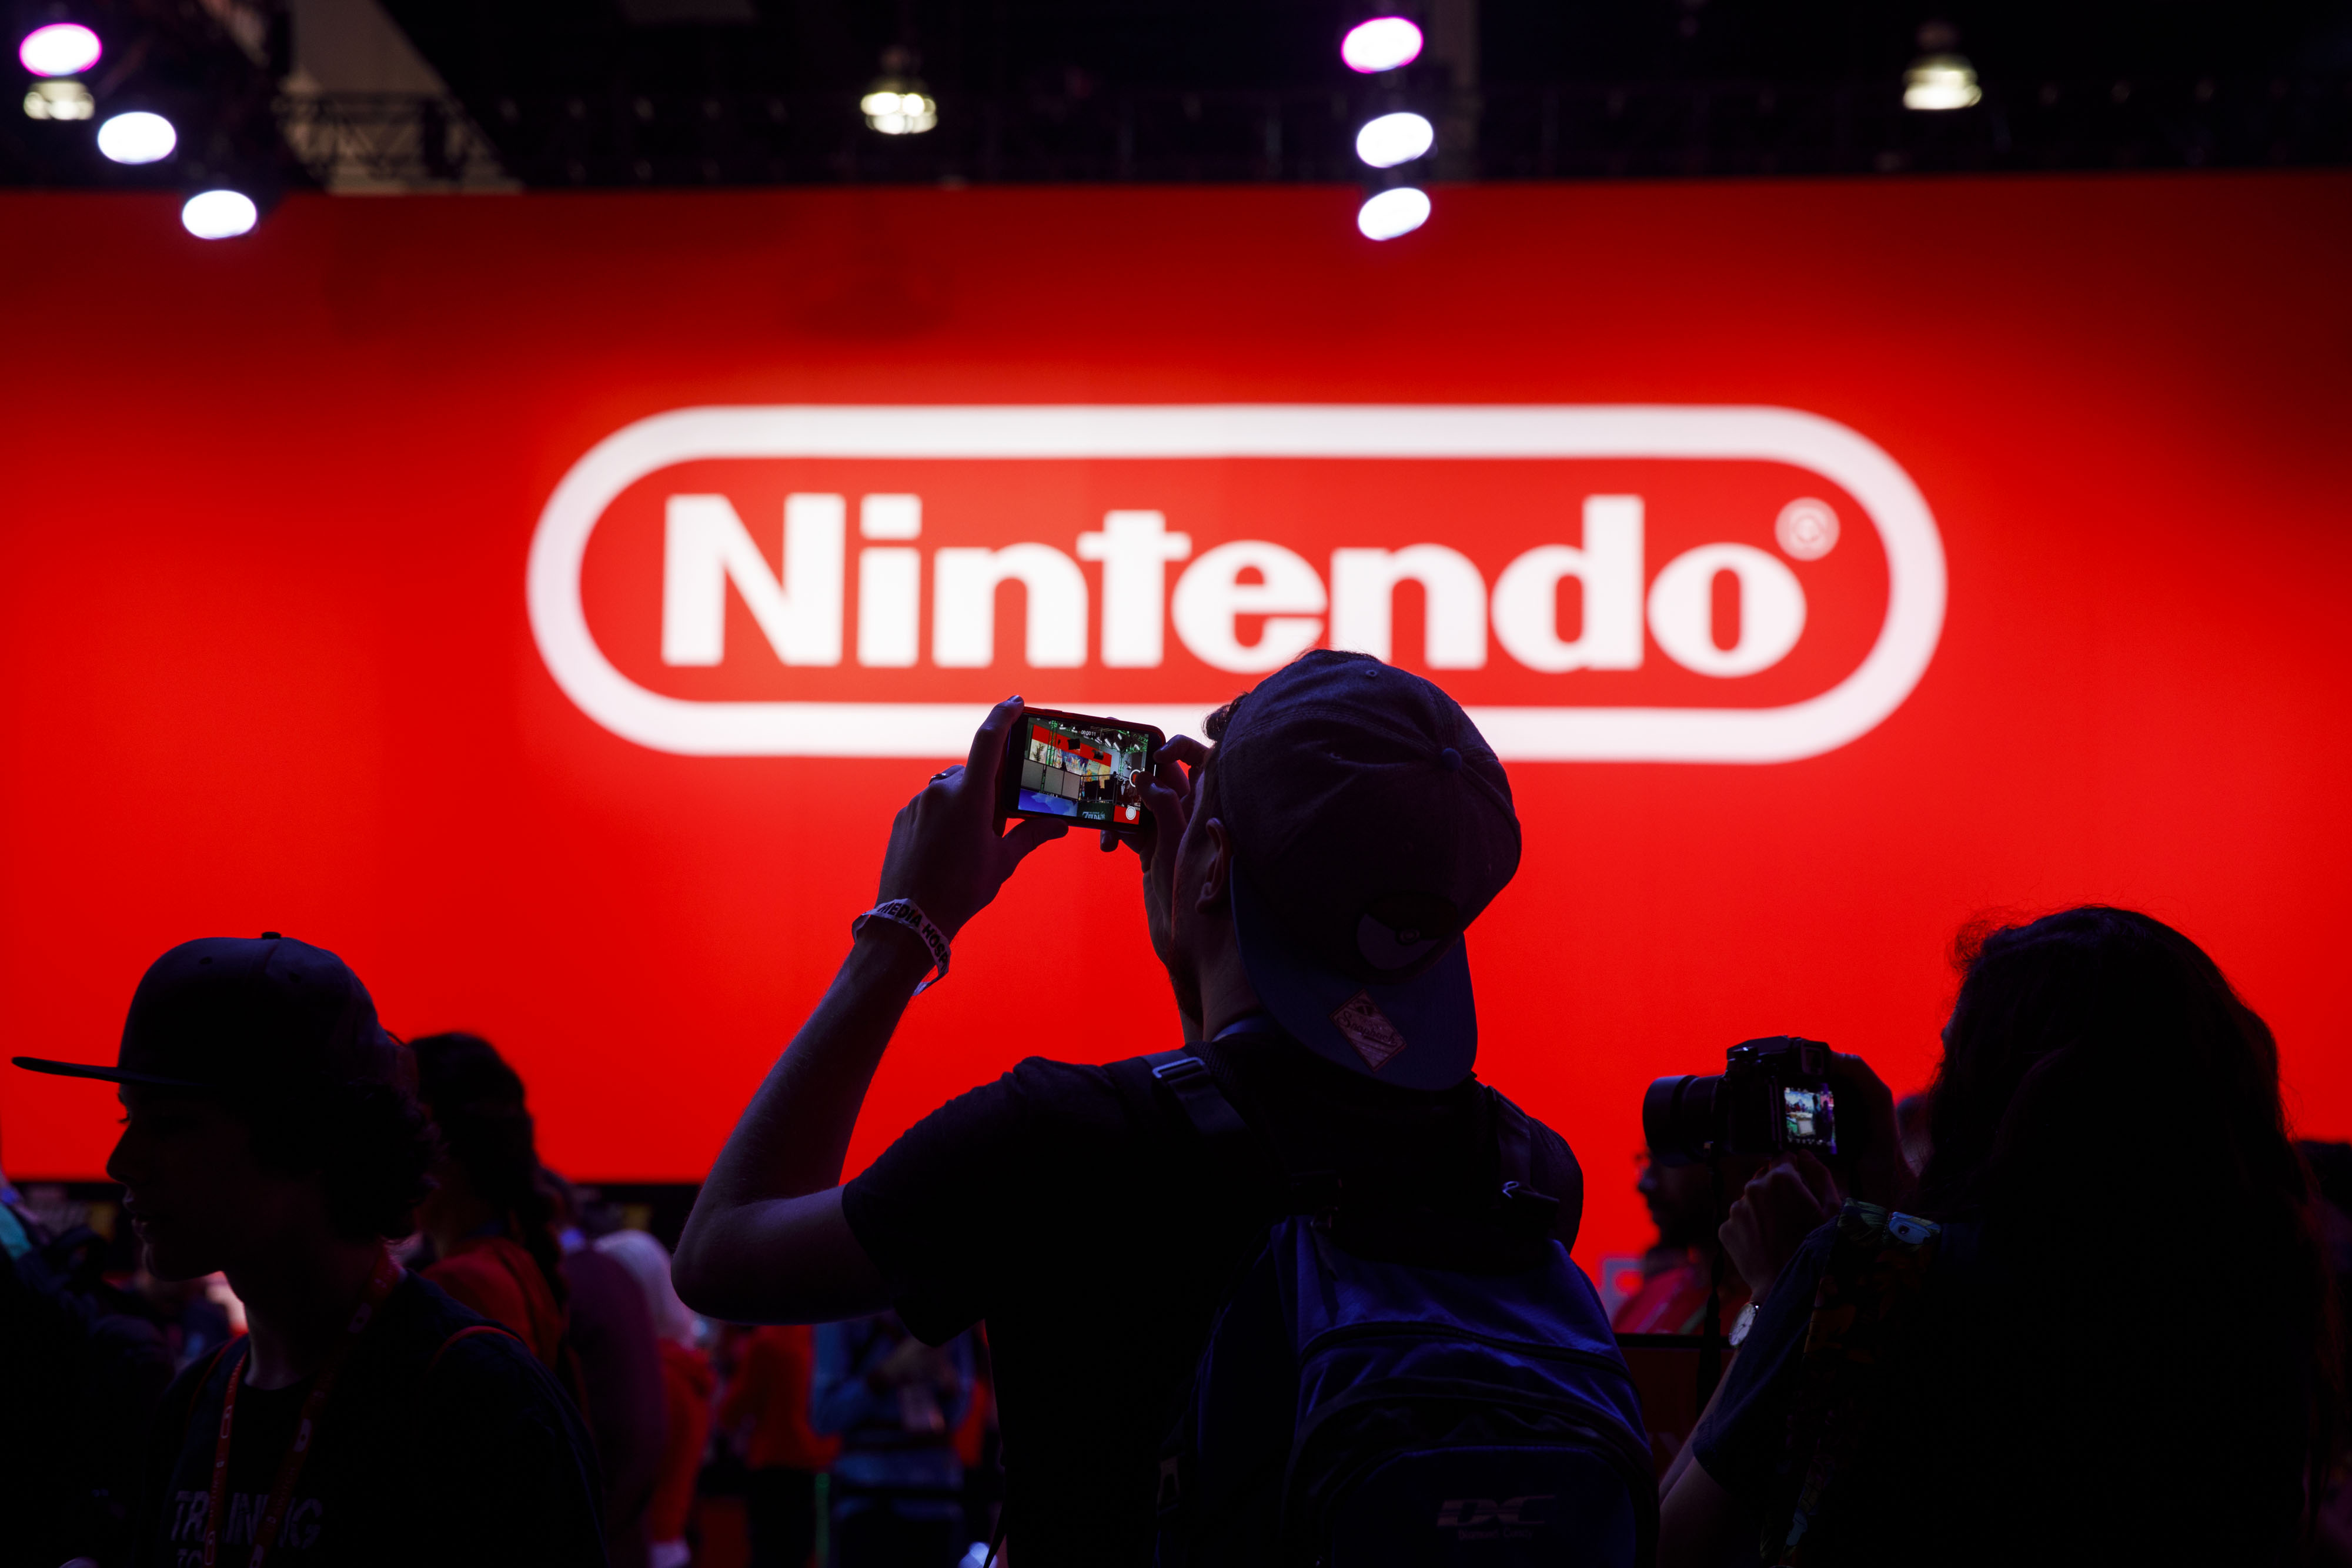 Attendees take photographs while waiting to enter the Nintendo Co. Pokemon Sword and Shield display during the E3 Electronic Entertainment Expo in Los Angeles, California, U.S., on Wednesday, June 12, 2019. For three days, leading-edge companies, groundbreaking new technologies and never-before-seen products are showcased at E3. Photographer: